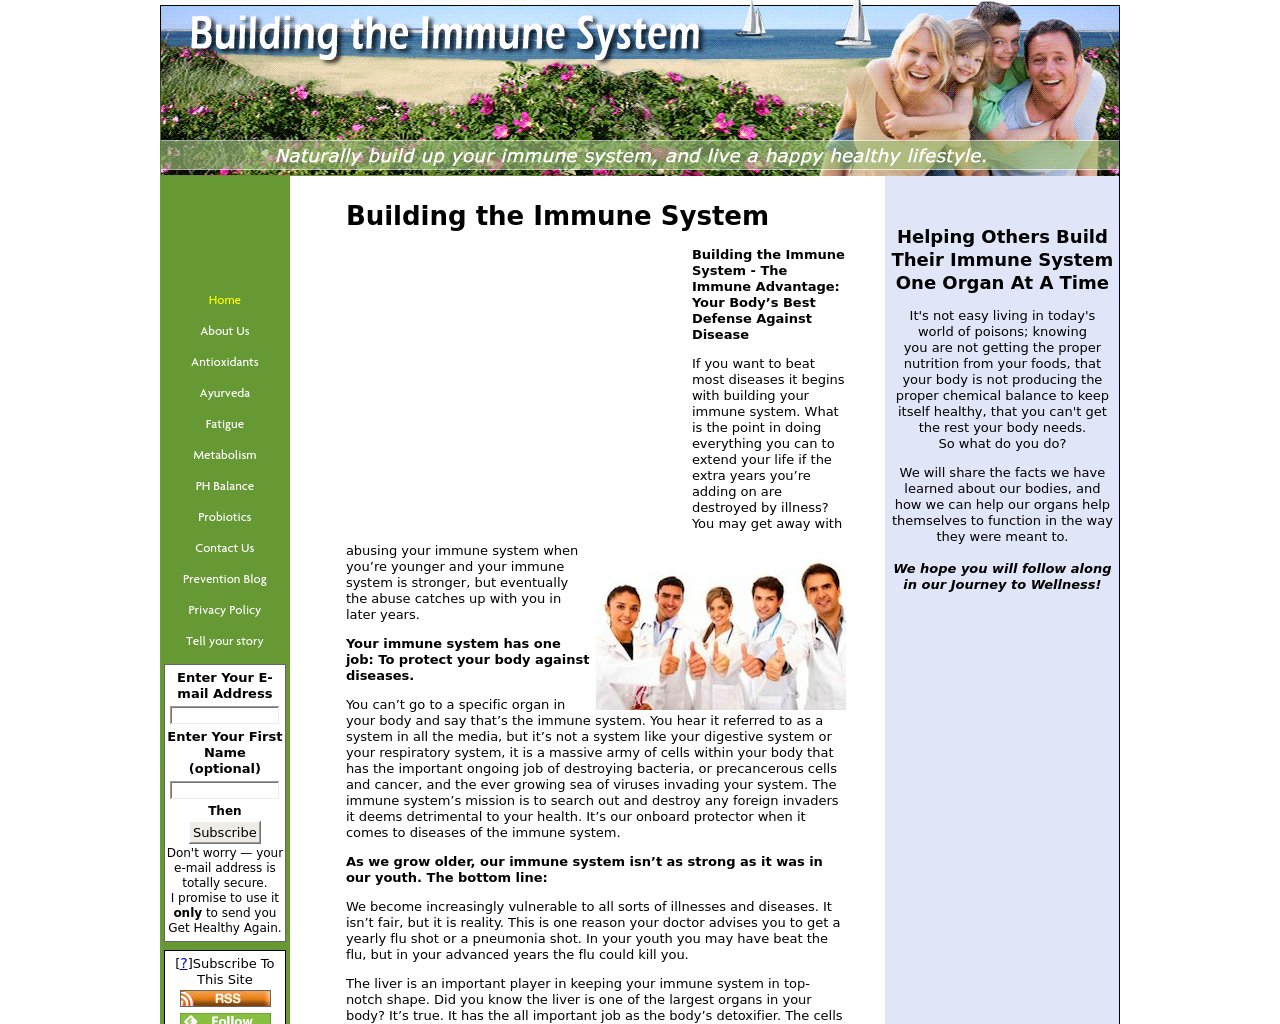 Building-the-Immune-System-Advertising-Reviews-Pricing